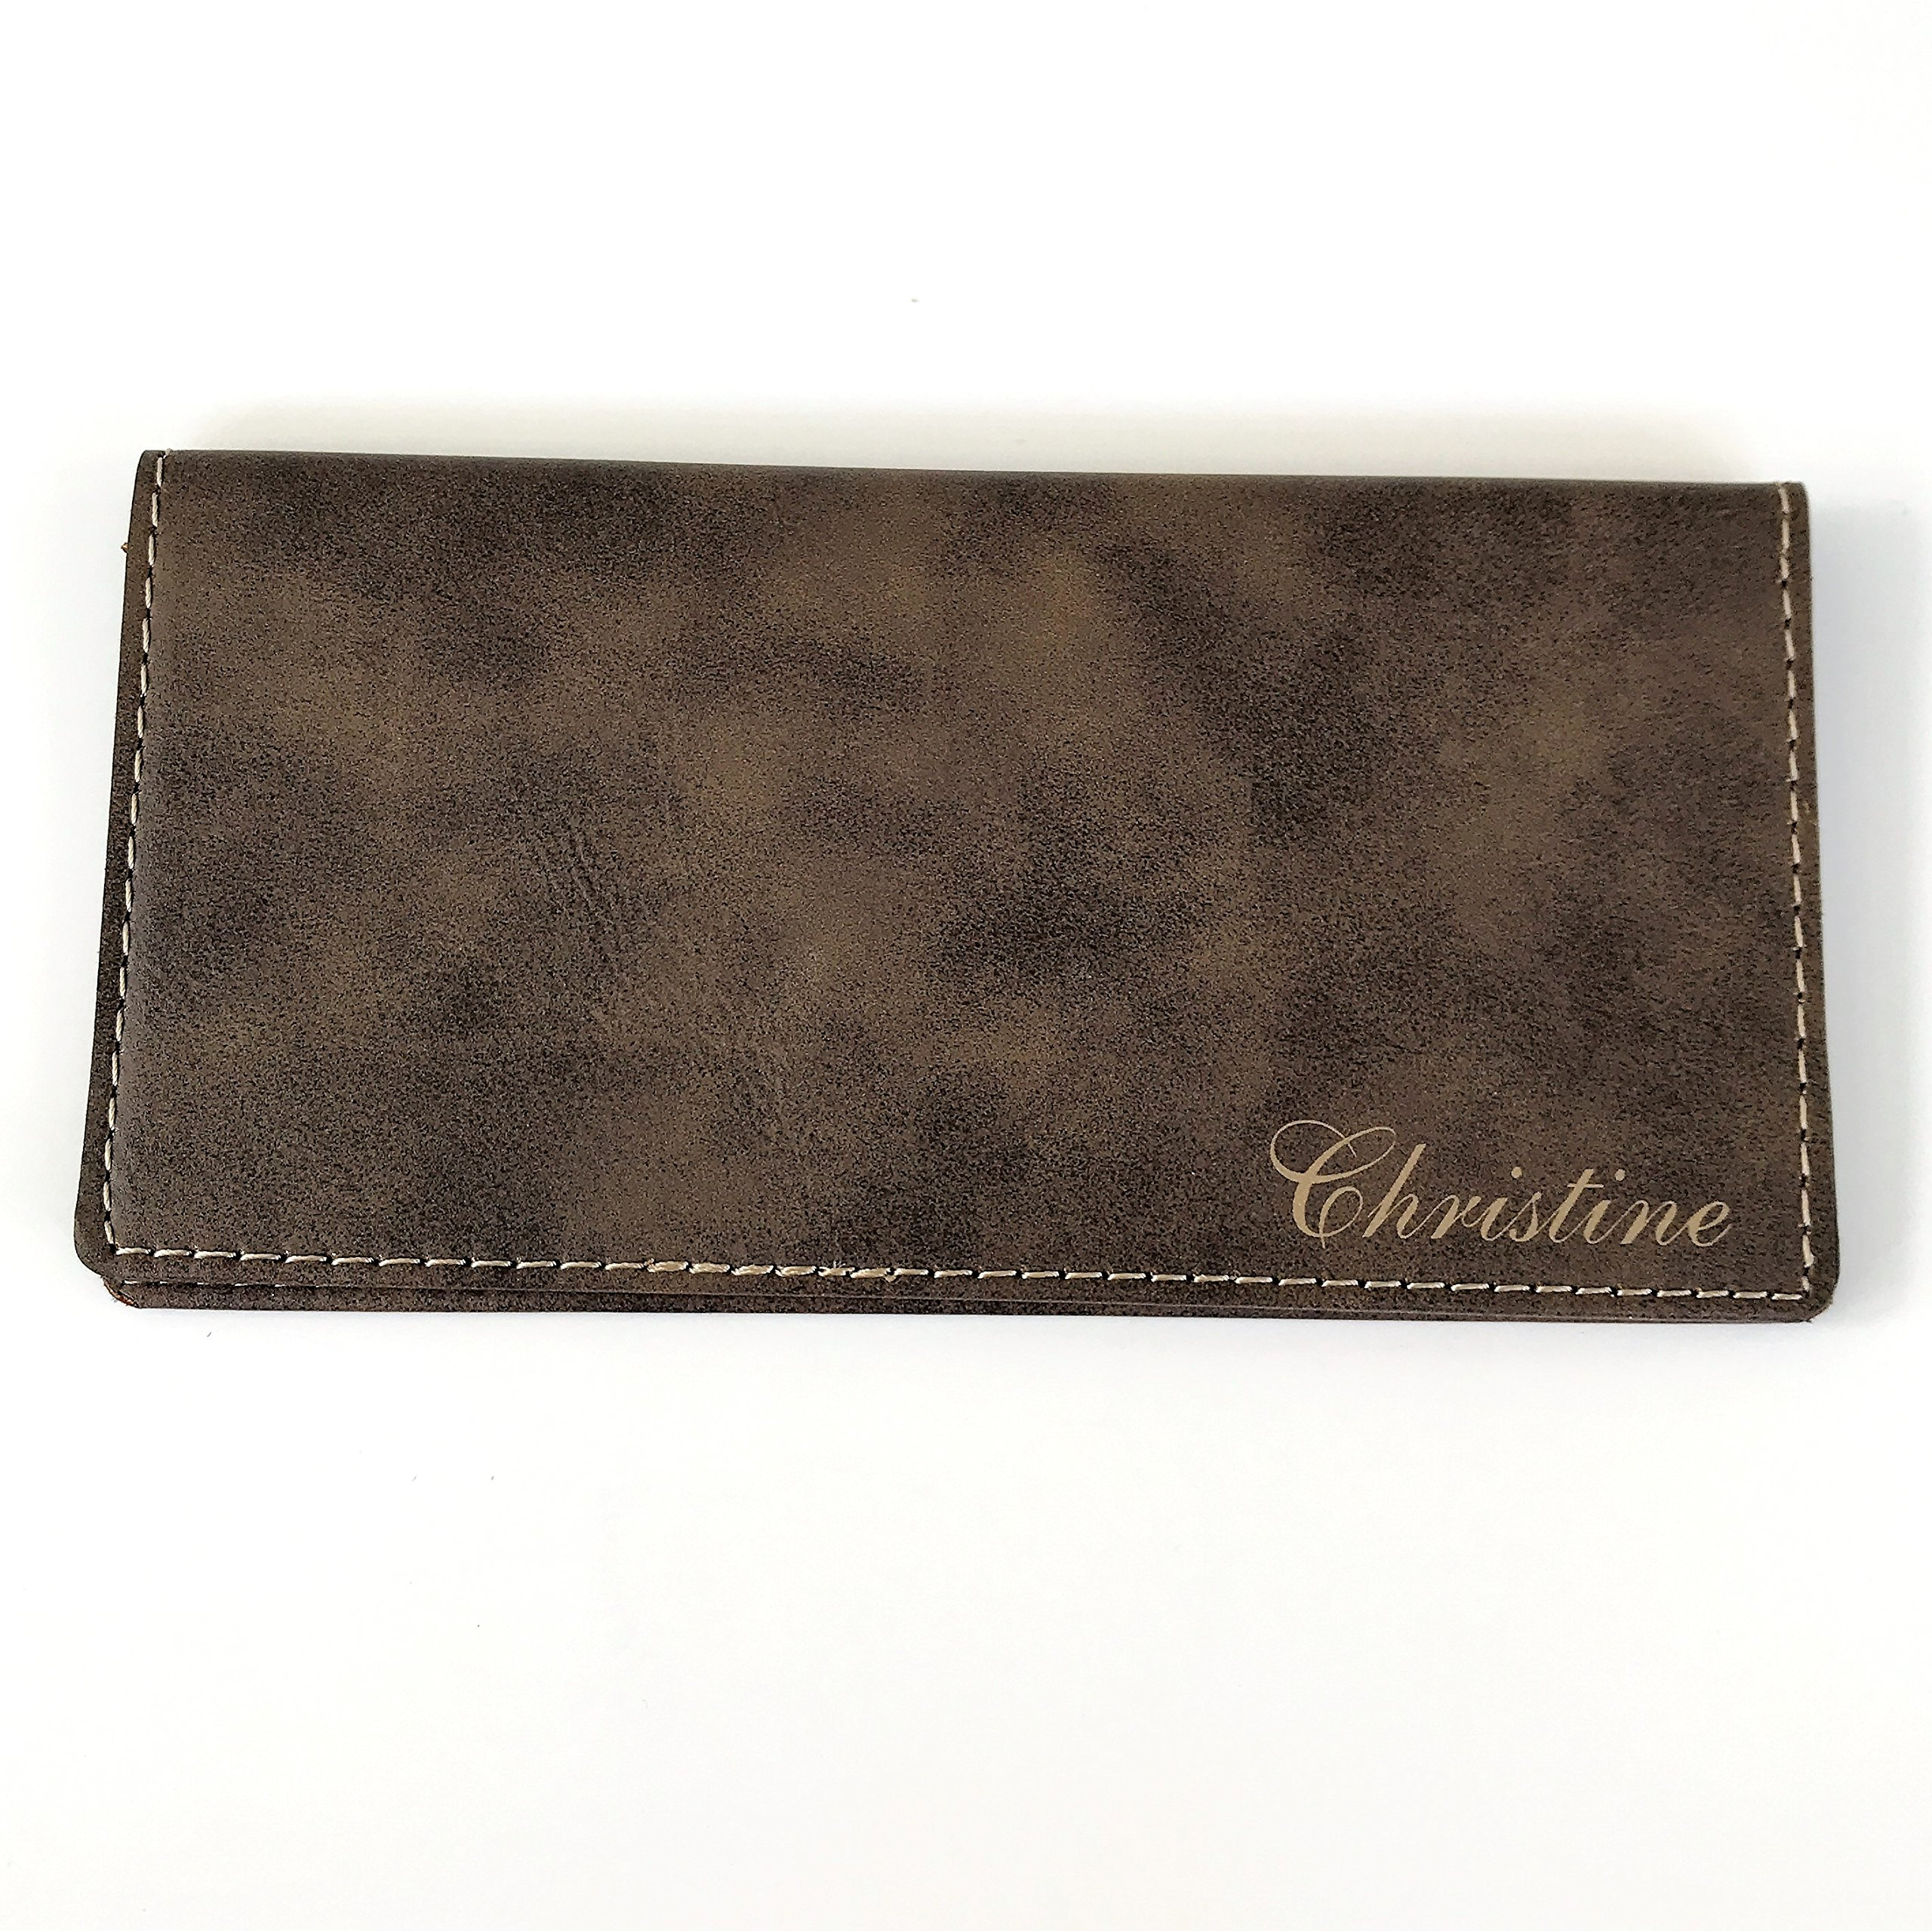 Personalized Checkbook Cover Faux Leather Permanently Engraved (Brown)